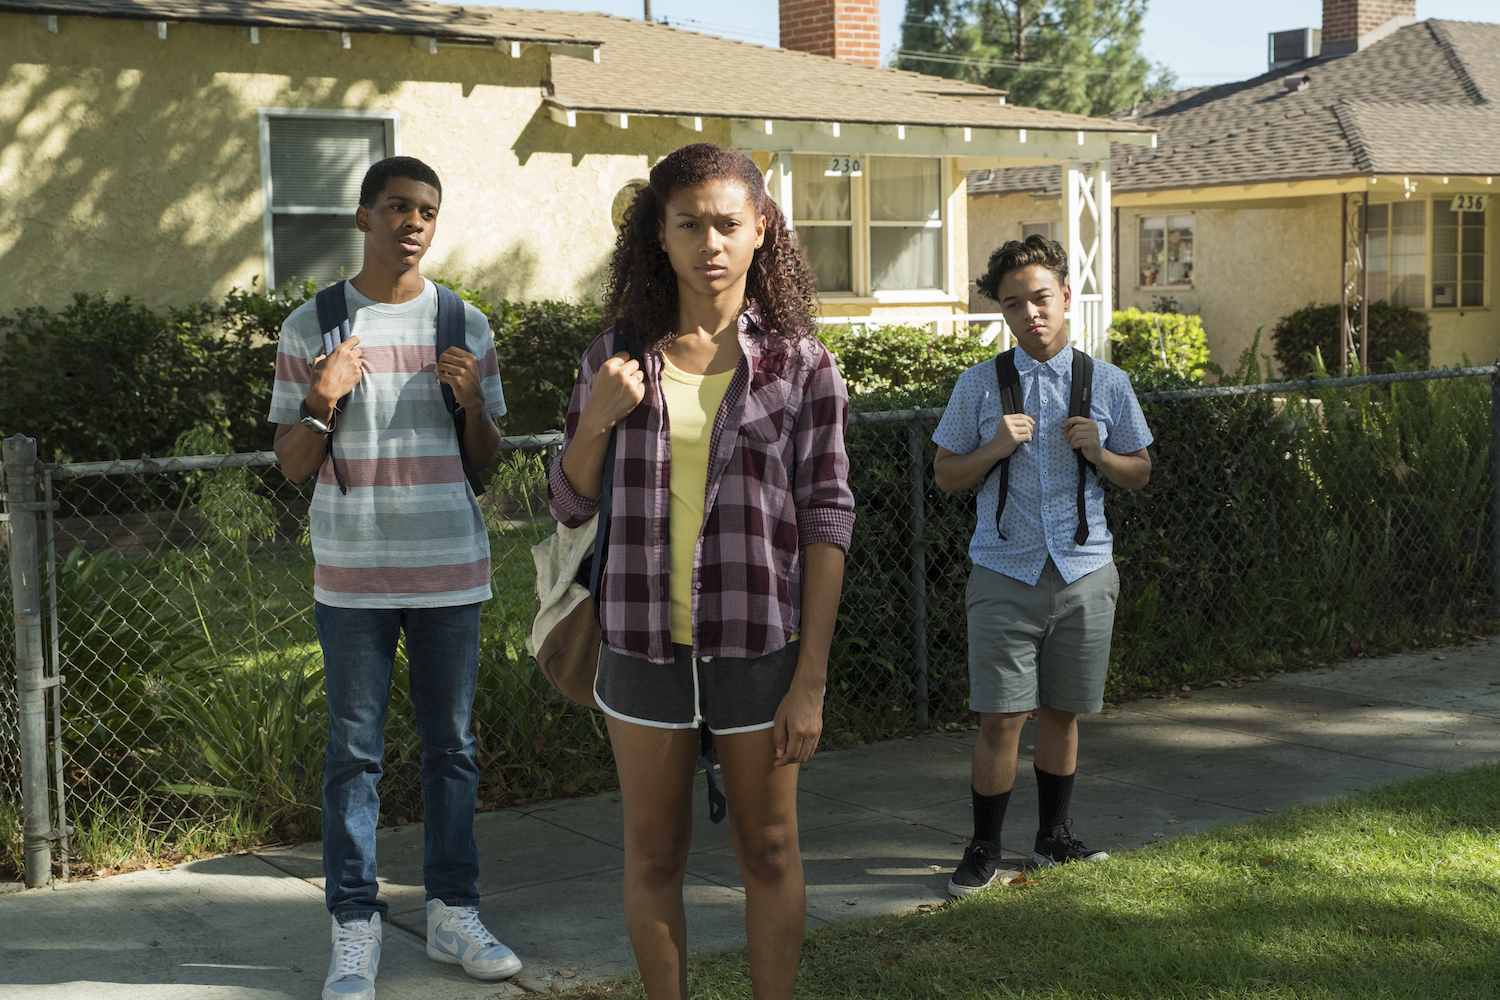 The Somber Season 2 Teaser of 'On My Block' Hints at Ruby's Fate